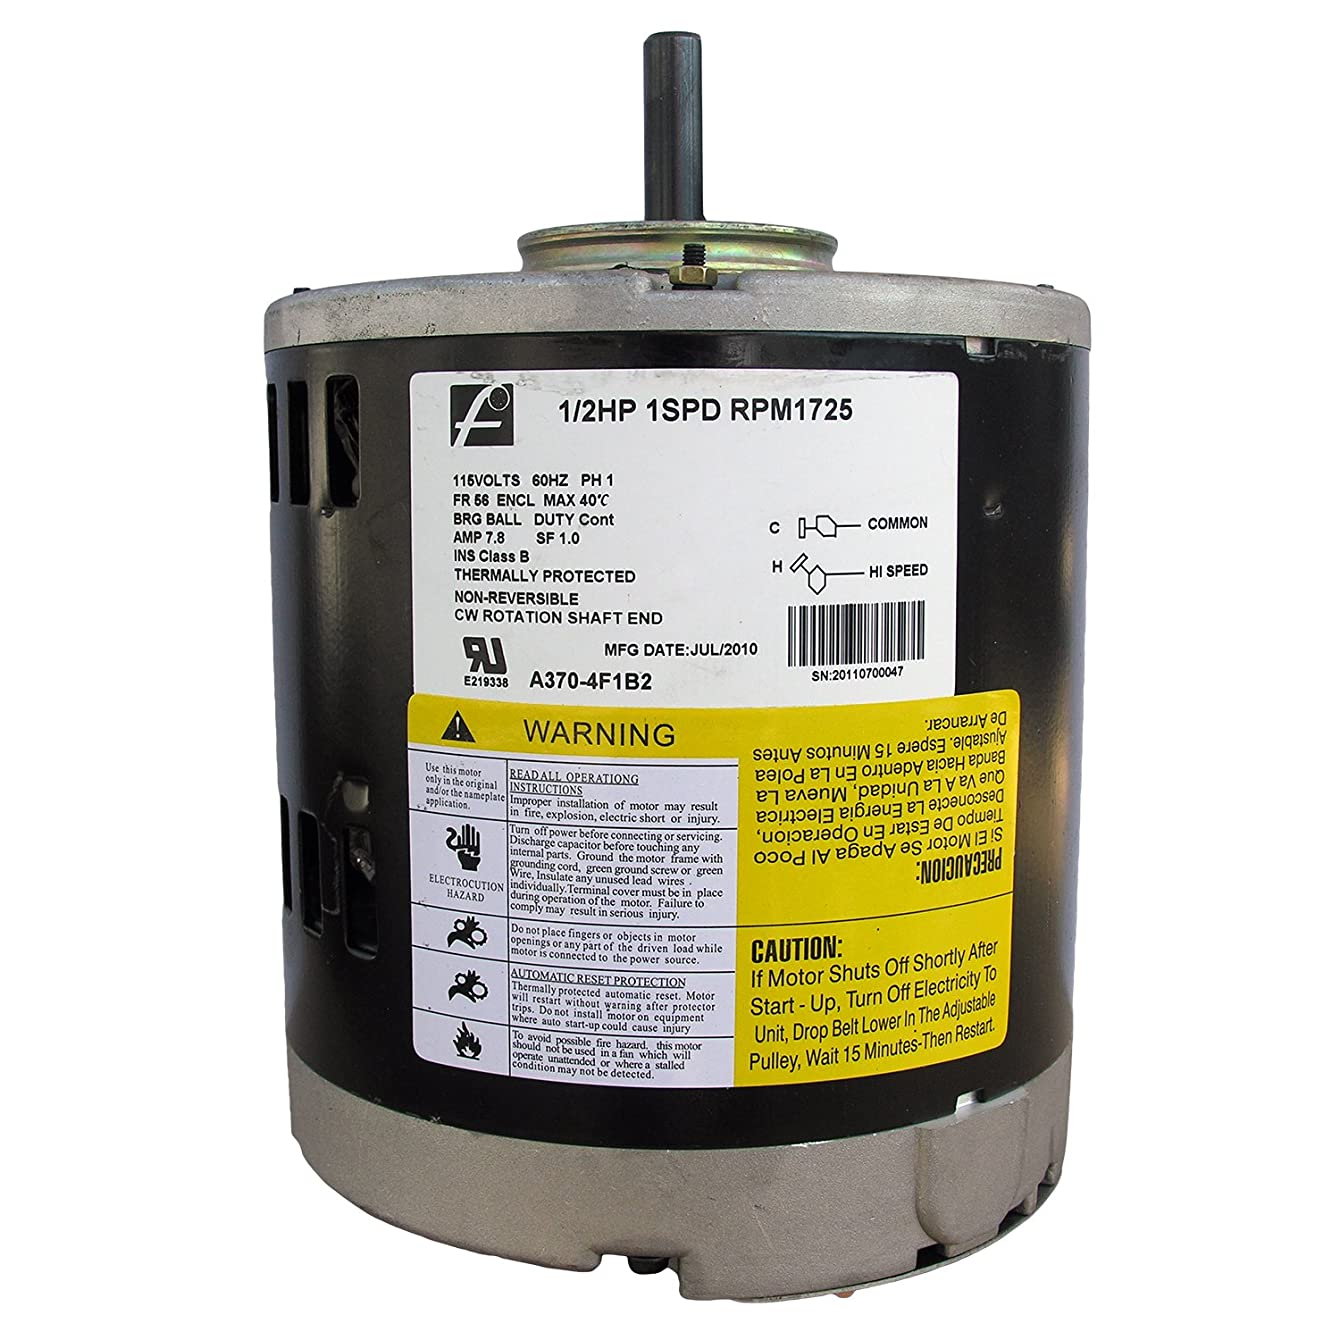 LASCO 05-1404 115-volt 1/2 HP Single Speed Evaporative Swamp Cooler Motor with 1/2-Inch Shaft